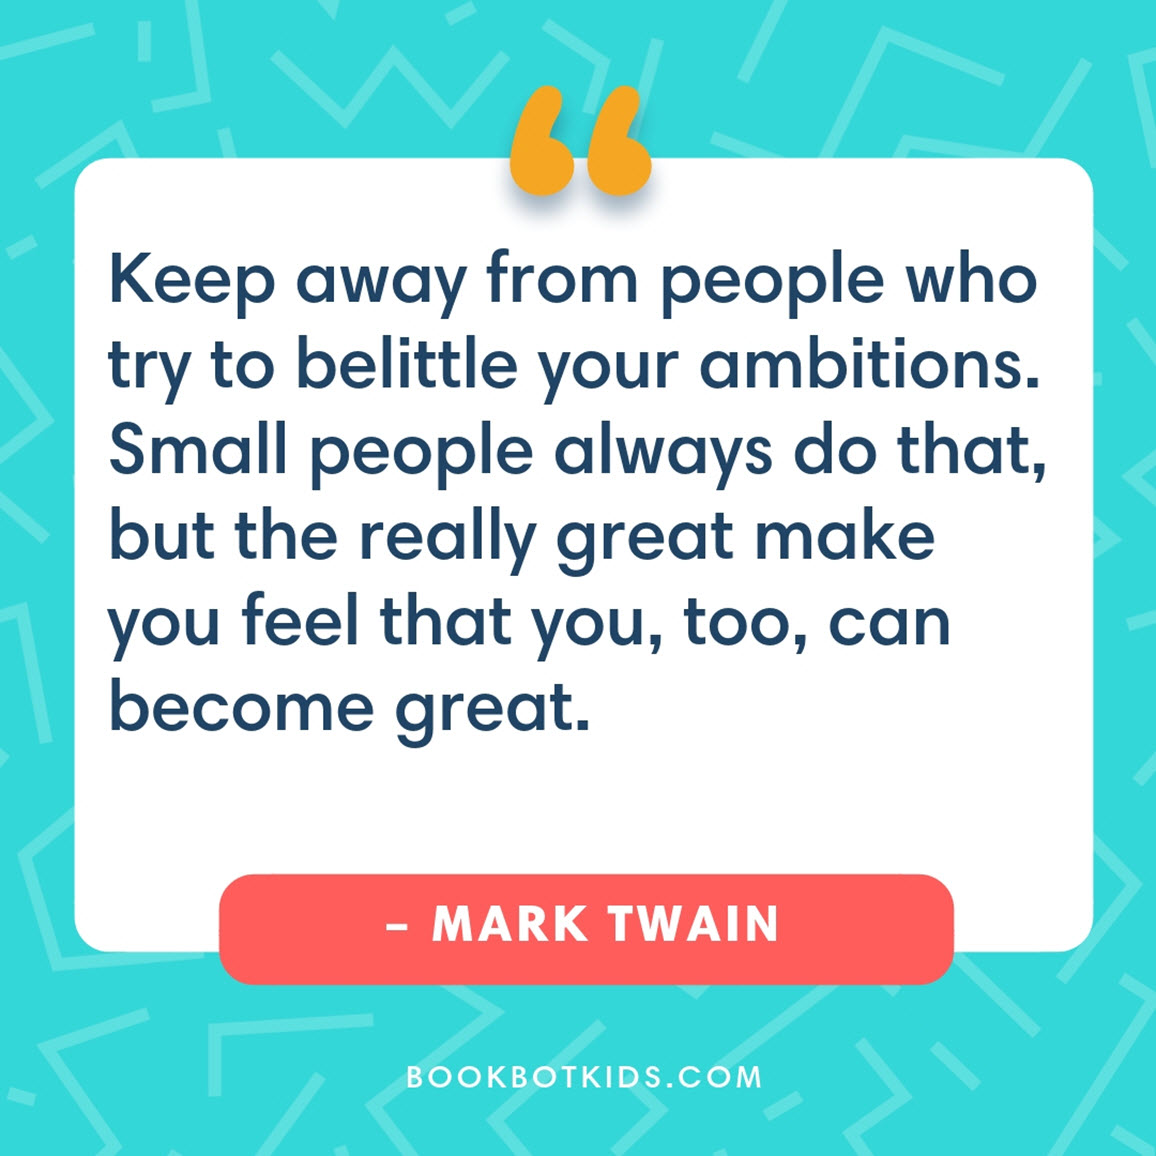 Keep away from people who try to belittle your ambitions. Small people always do that, but the really great make you feel that you, too, can become great. – Mark Twain